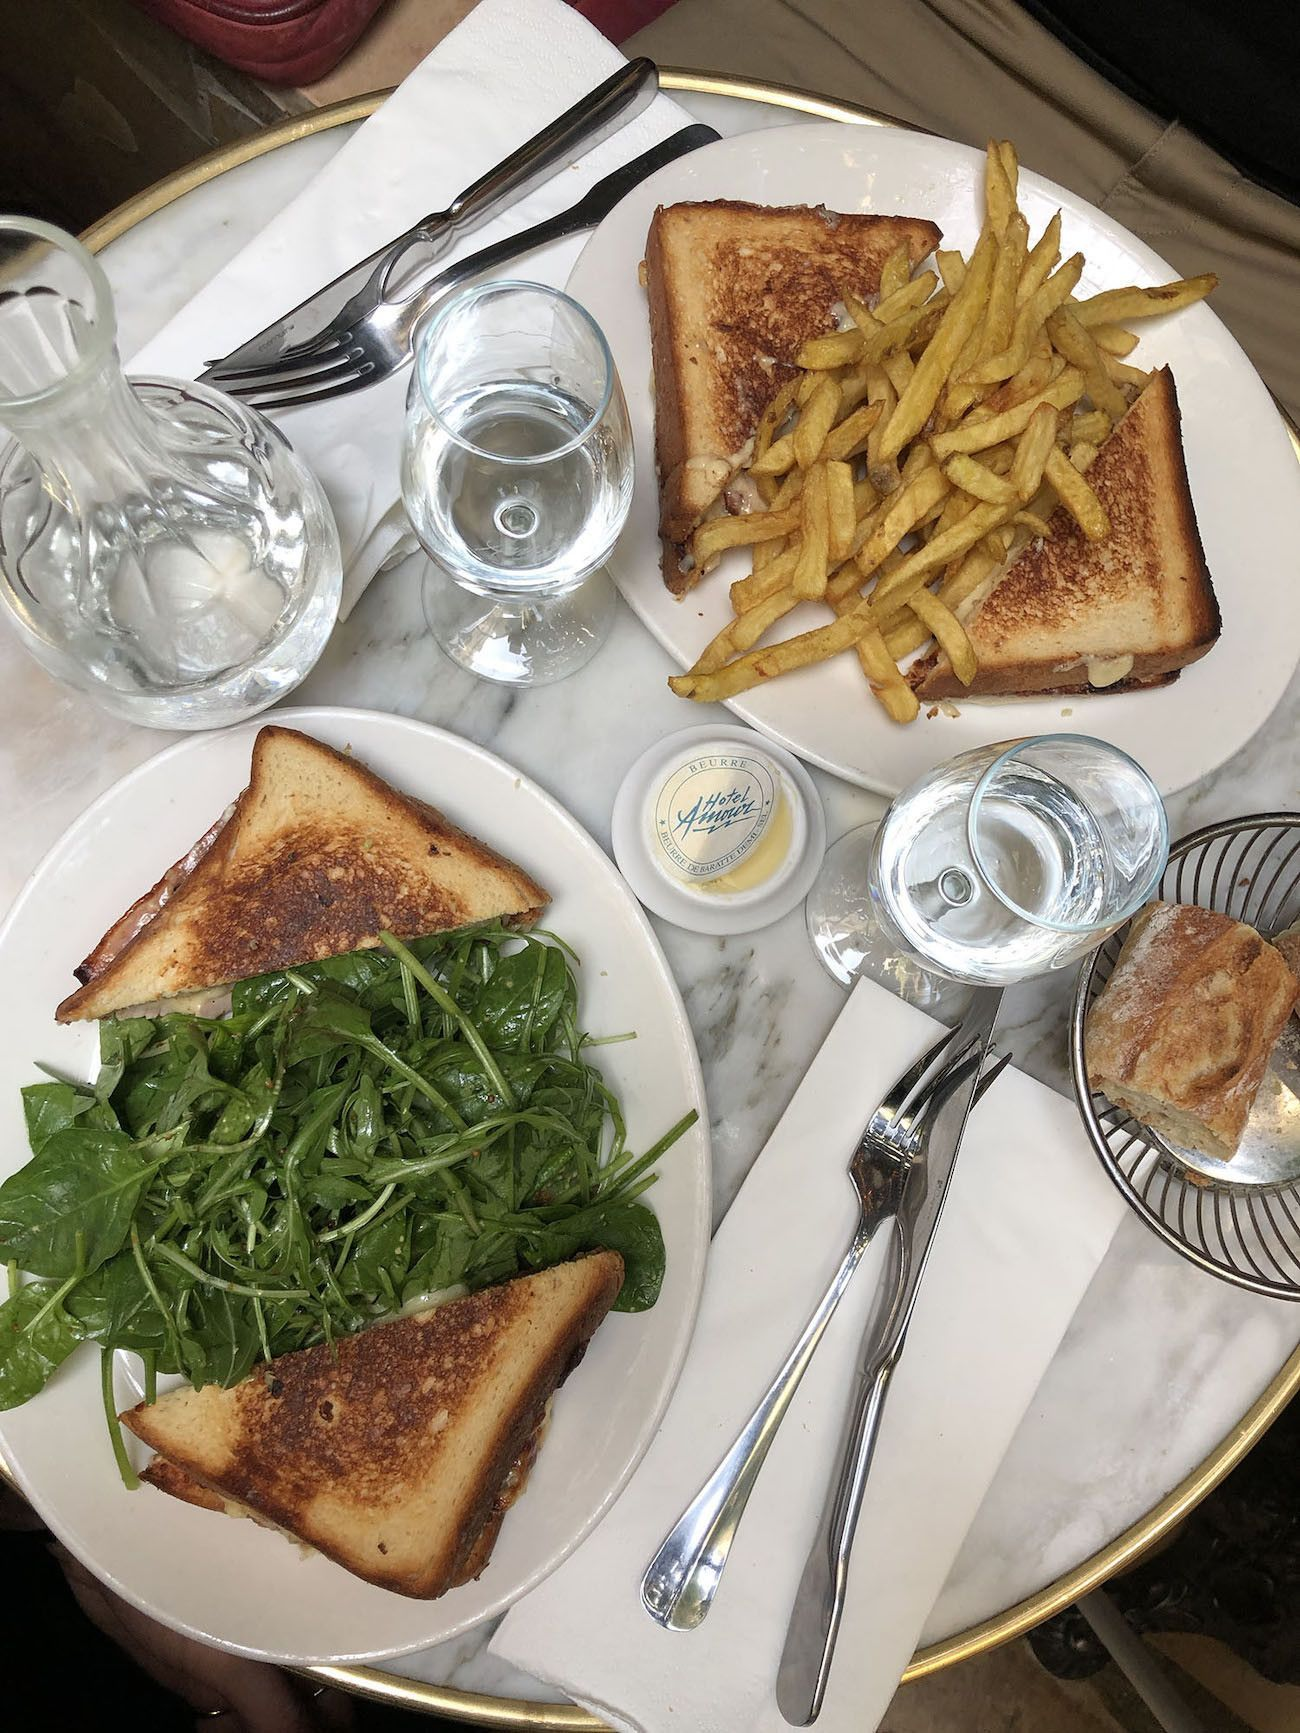 Foodblog About Fuel, Paris, Hotel Amour, Salat, Pommes, Croque Monsieur